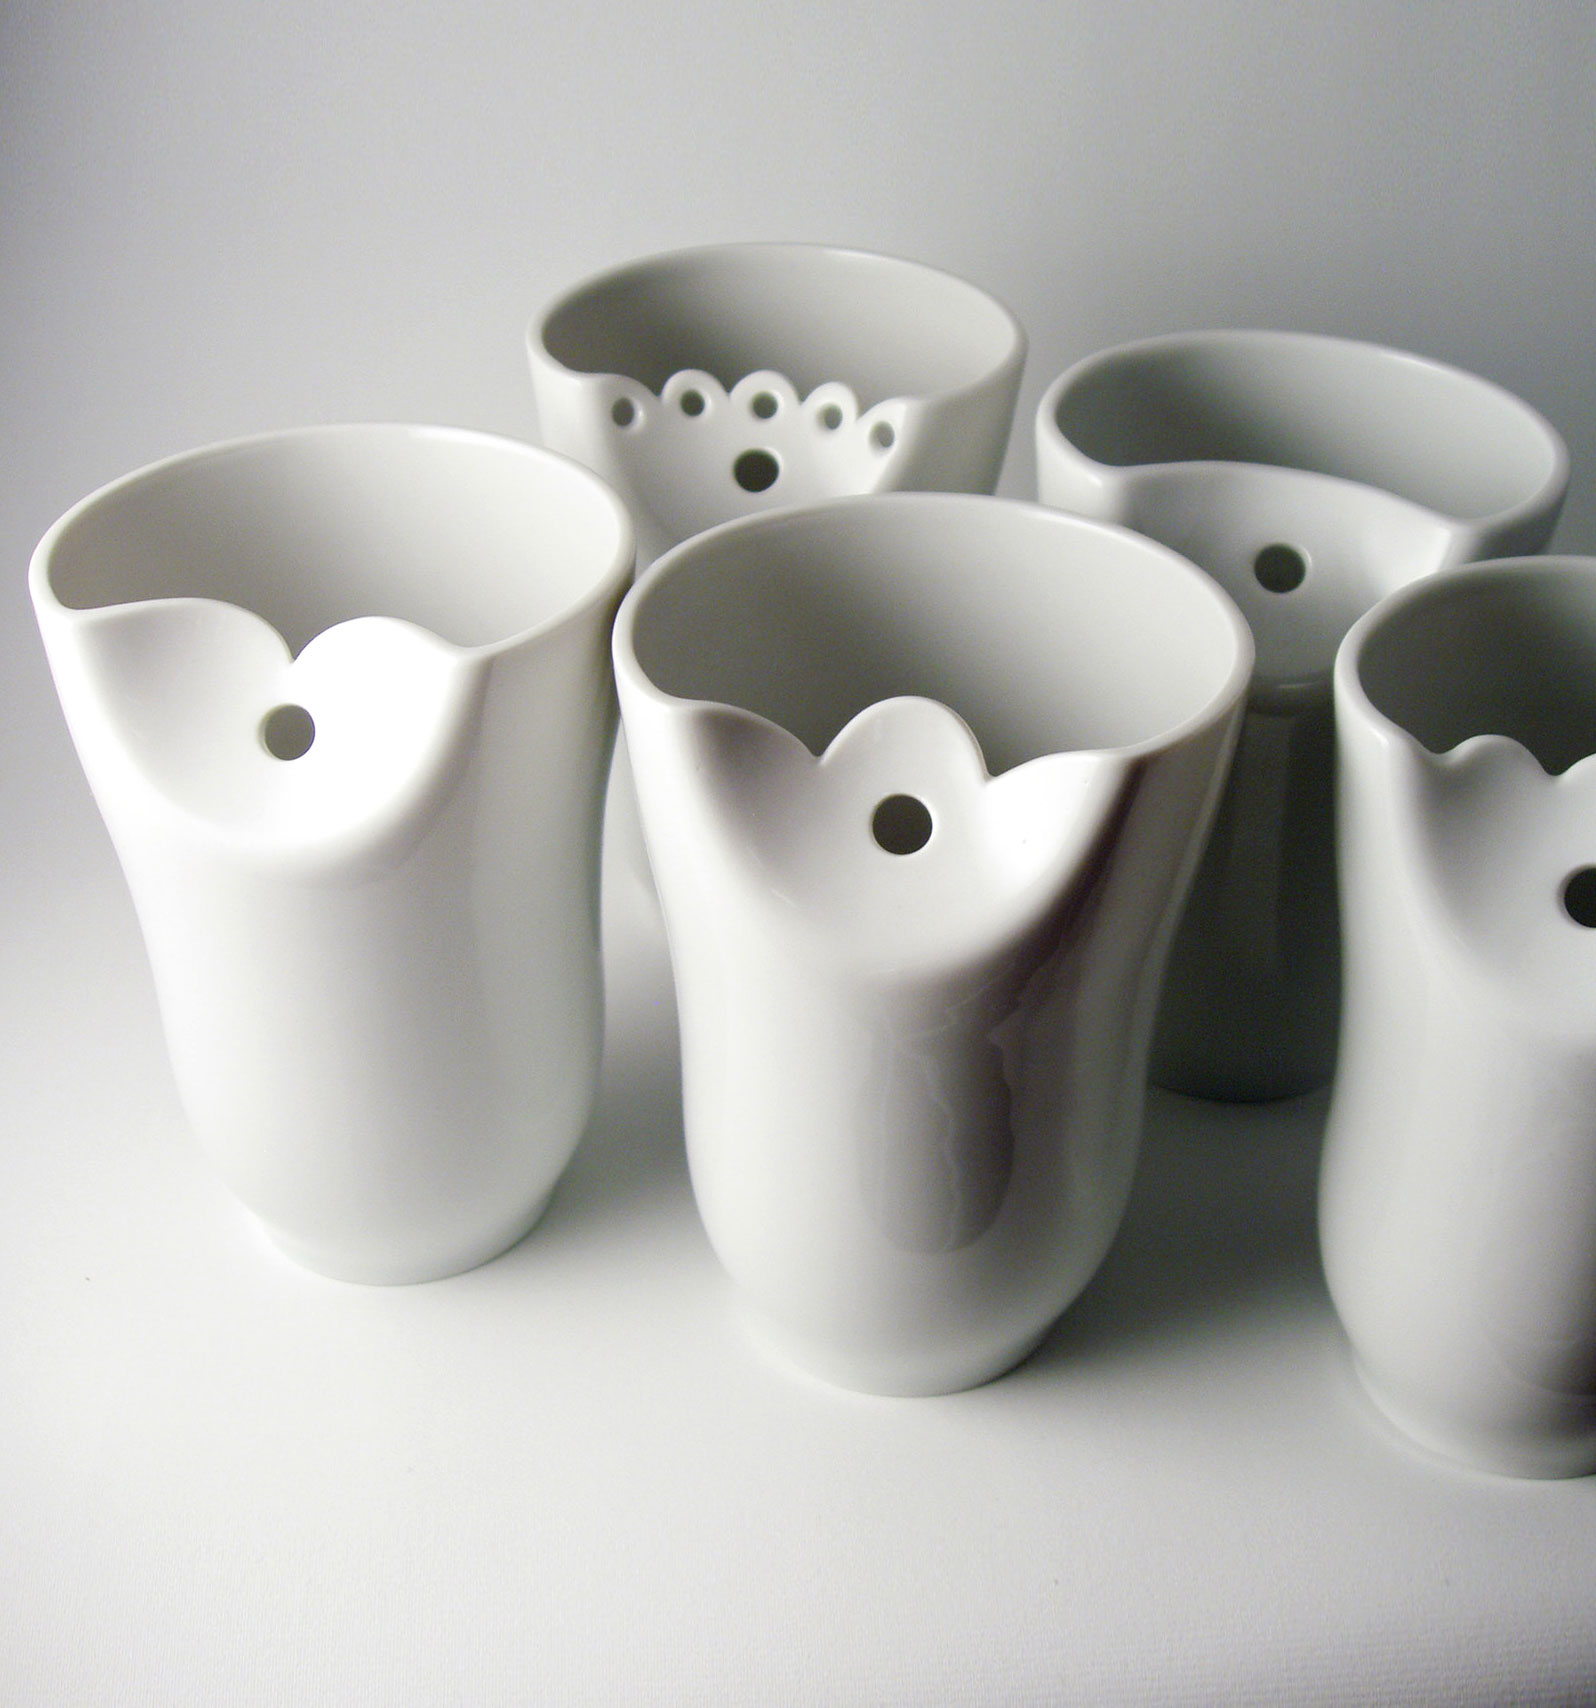 awesome-design-ideas-Handmade-Porcelain-Cups-Sarka-Schmelzerova-3